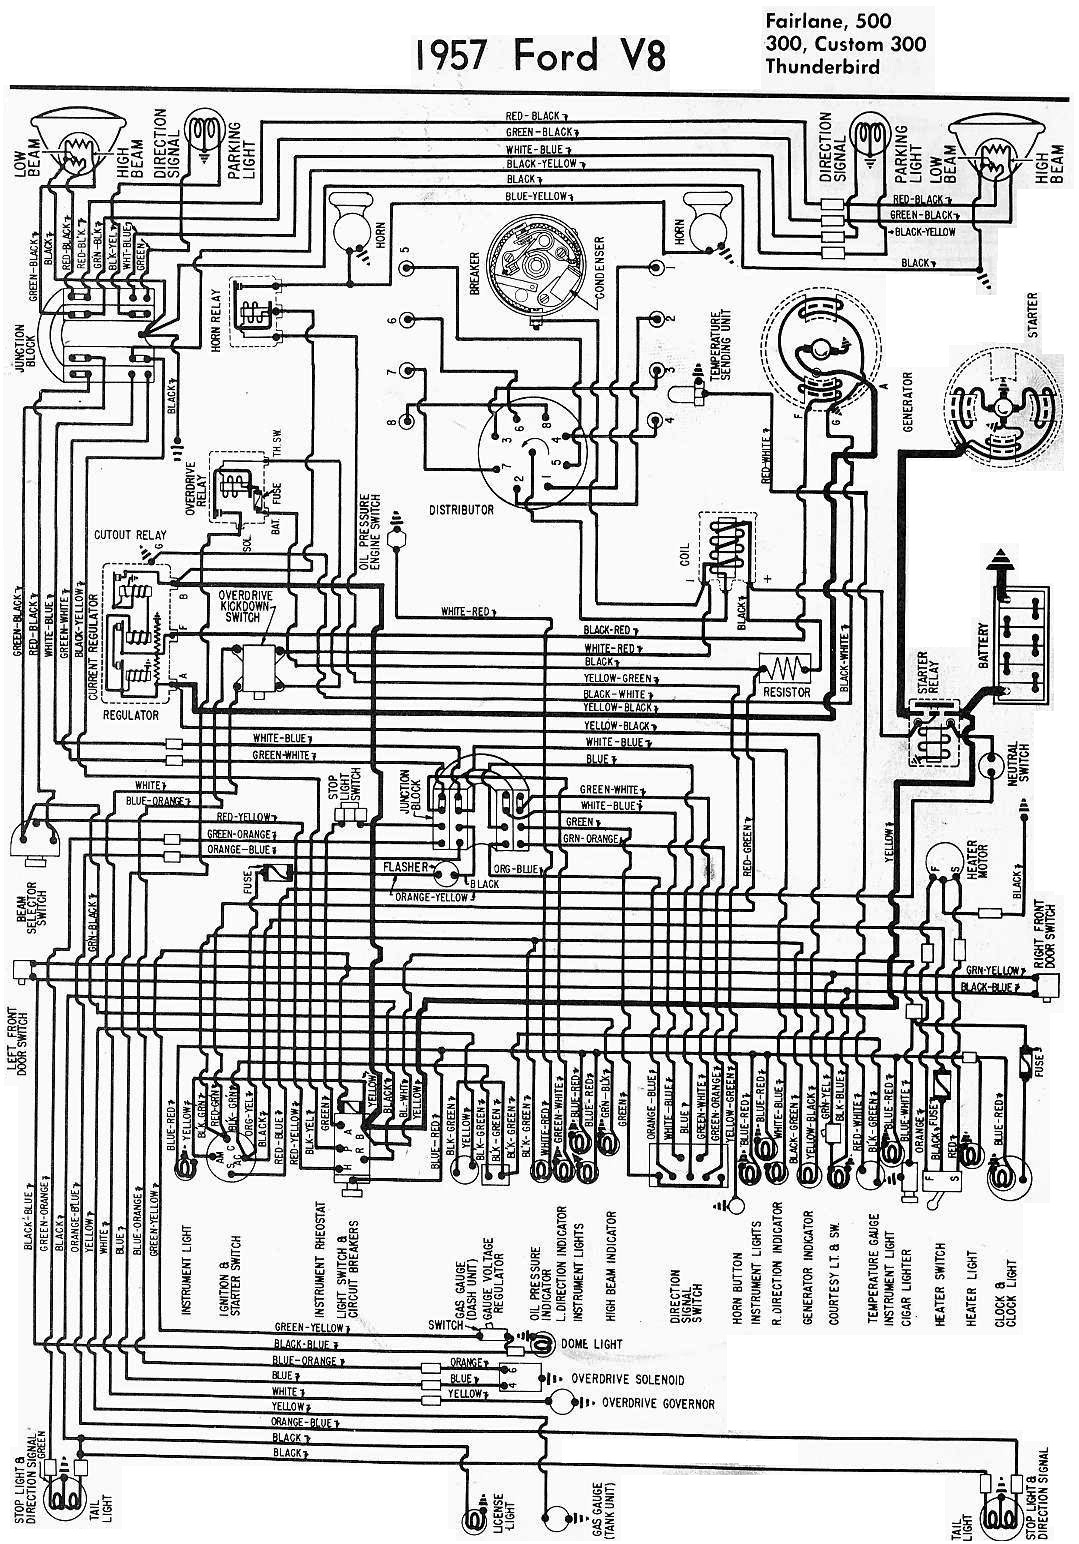 88 f150 wiring diagram 1997 ford f150 lariat radio wiring diagram 1997 wiring diagrams